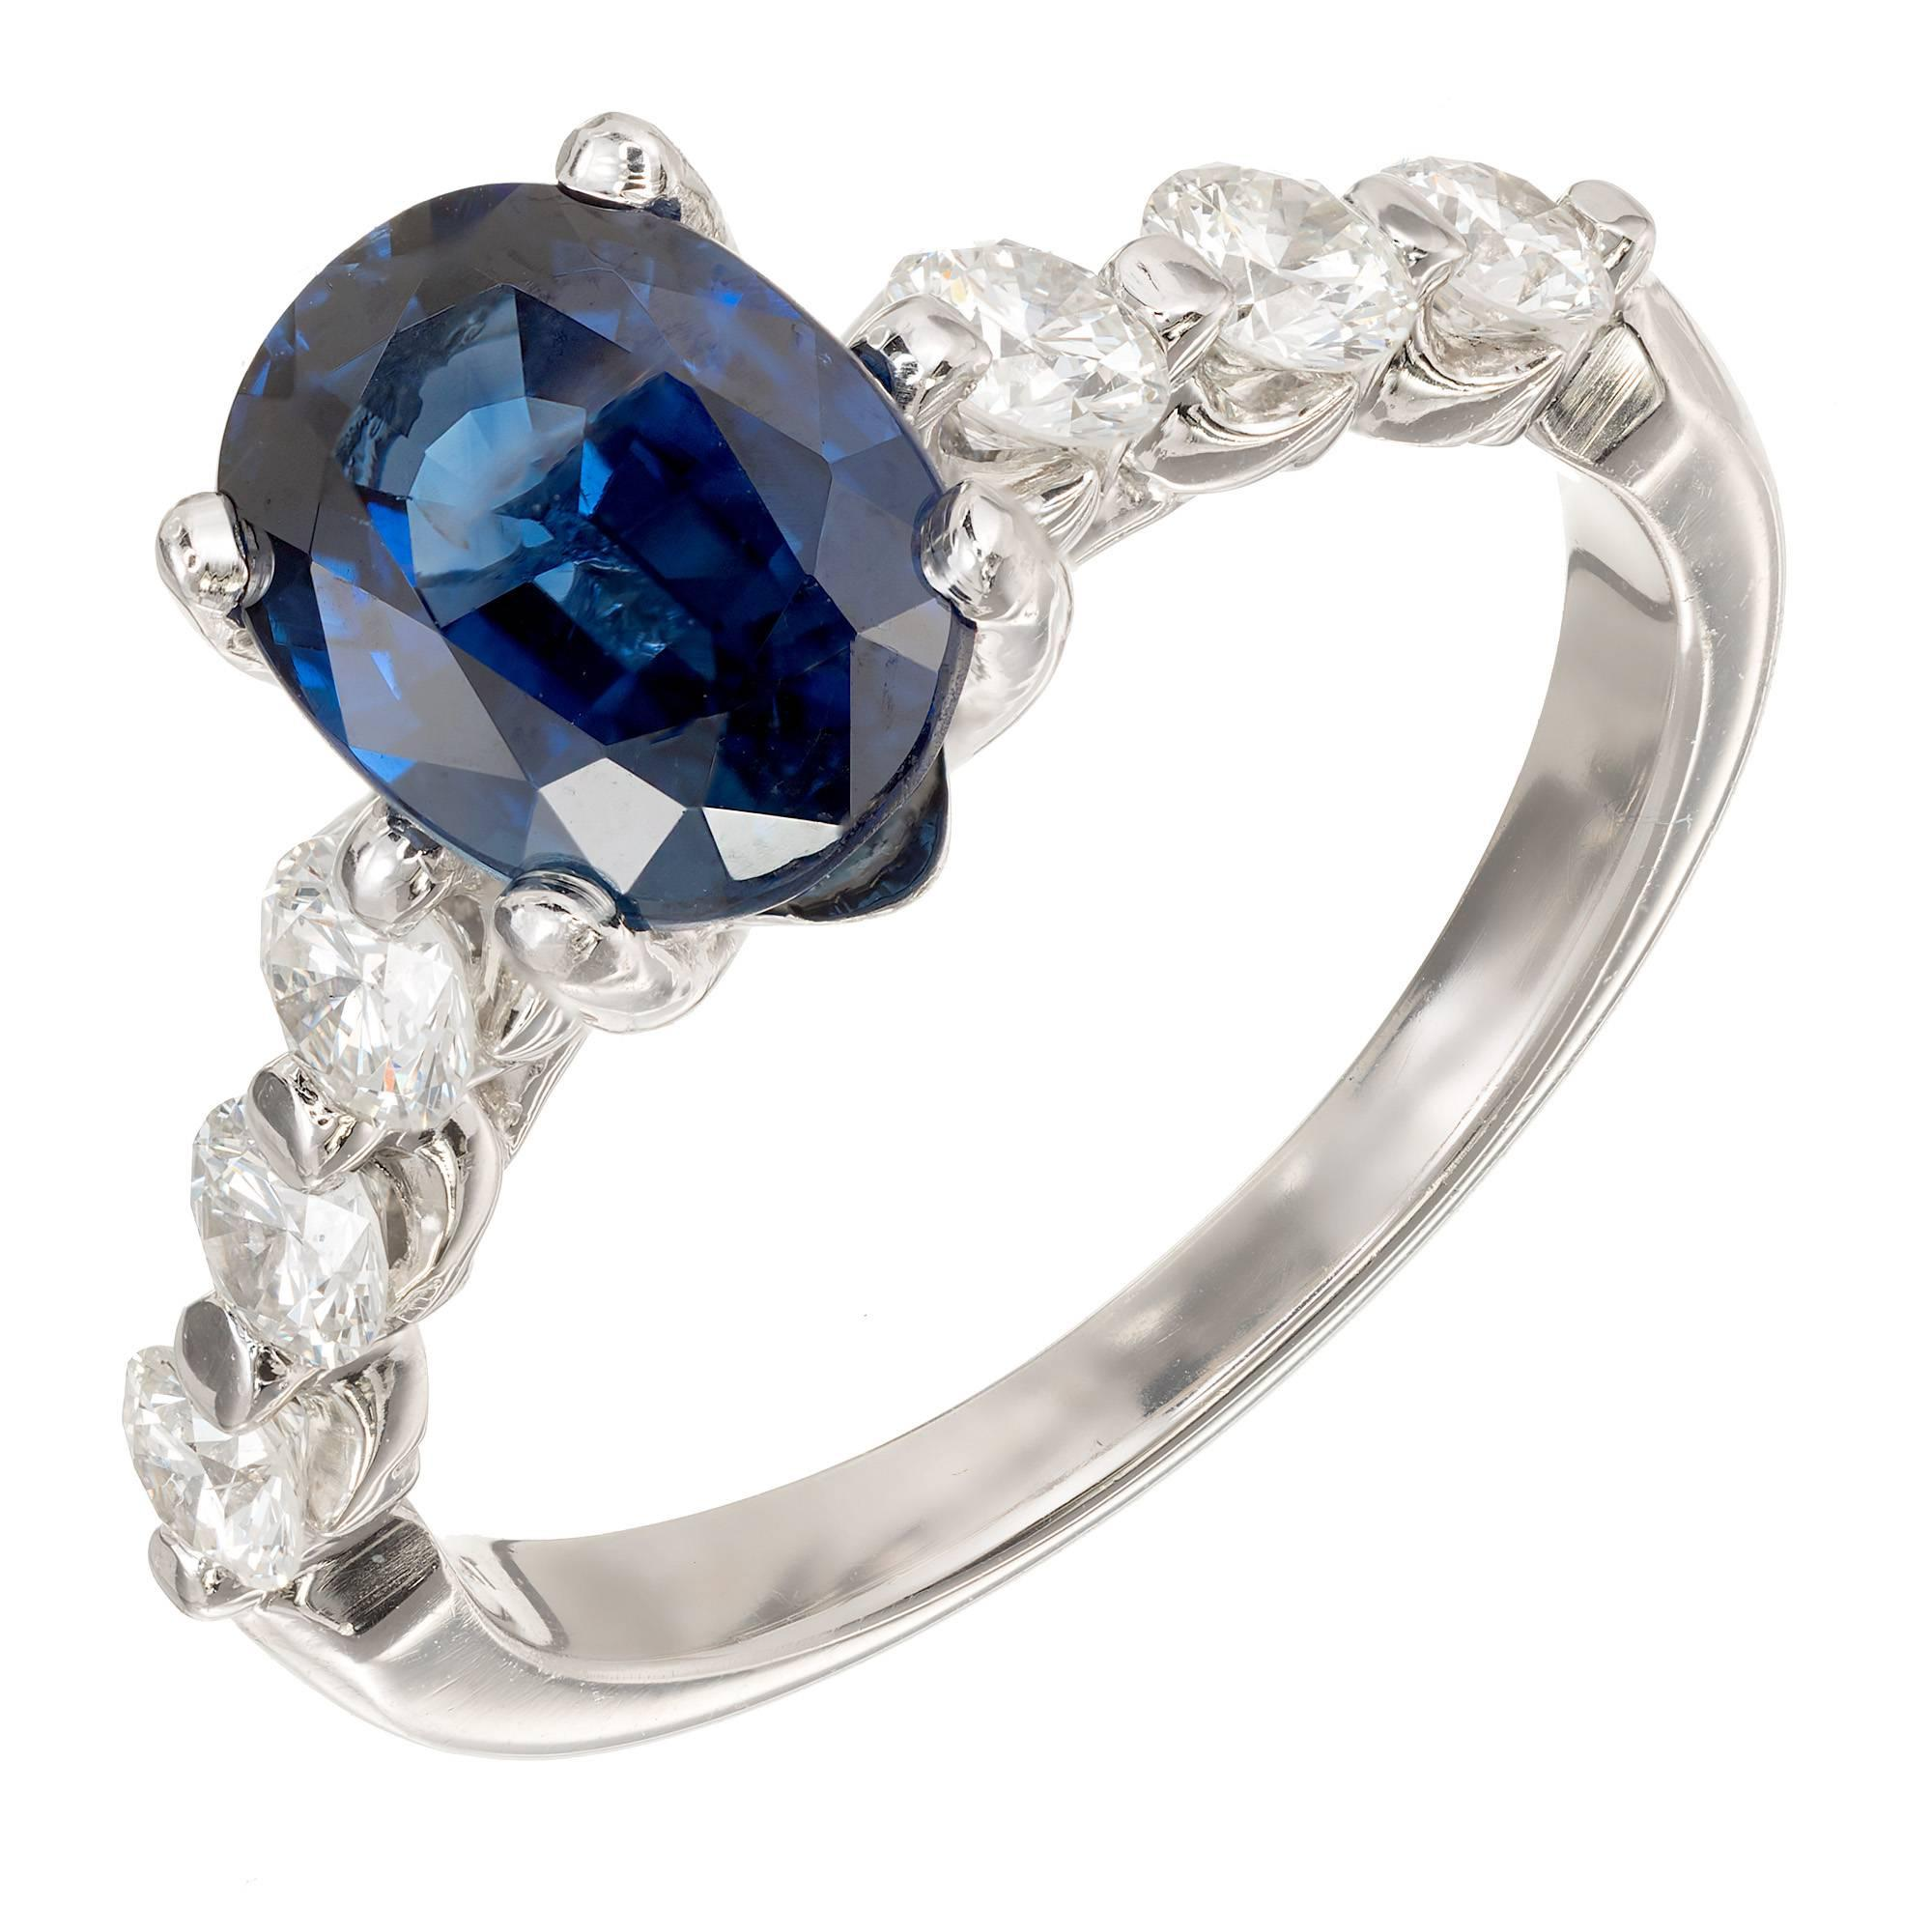 blue il engagement listing apprasied and dark rings rare fullxfull graded ring size diamond